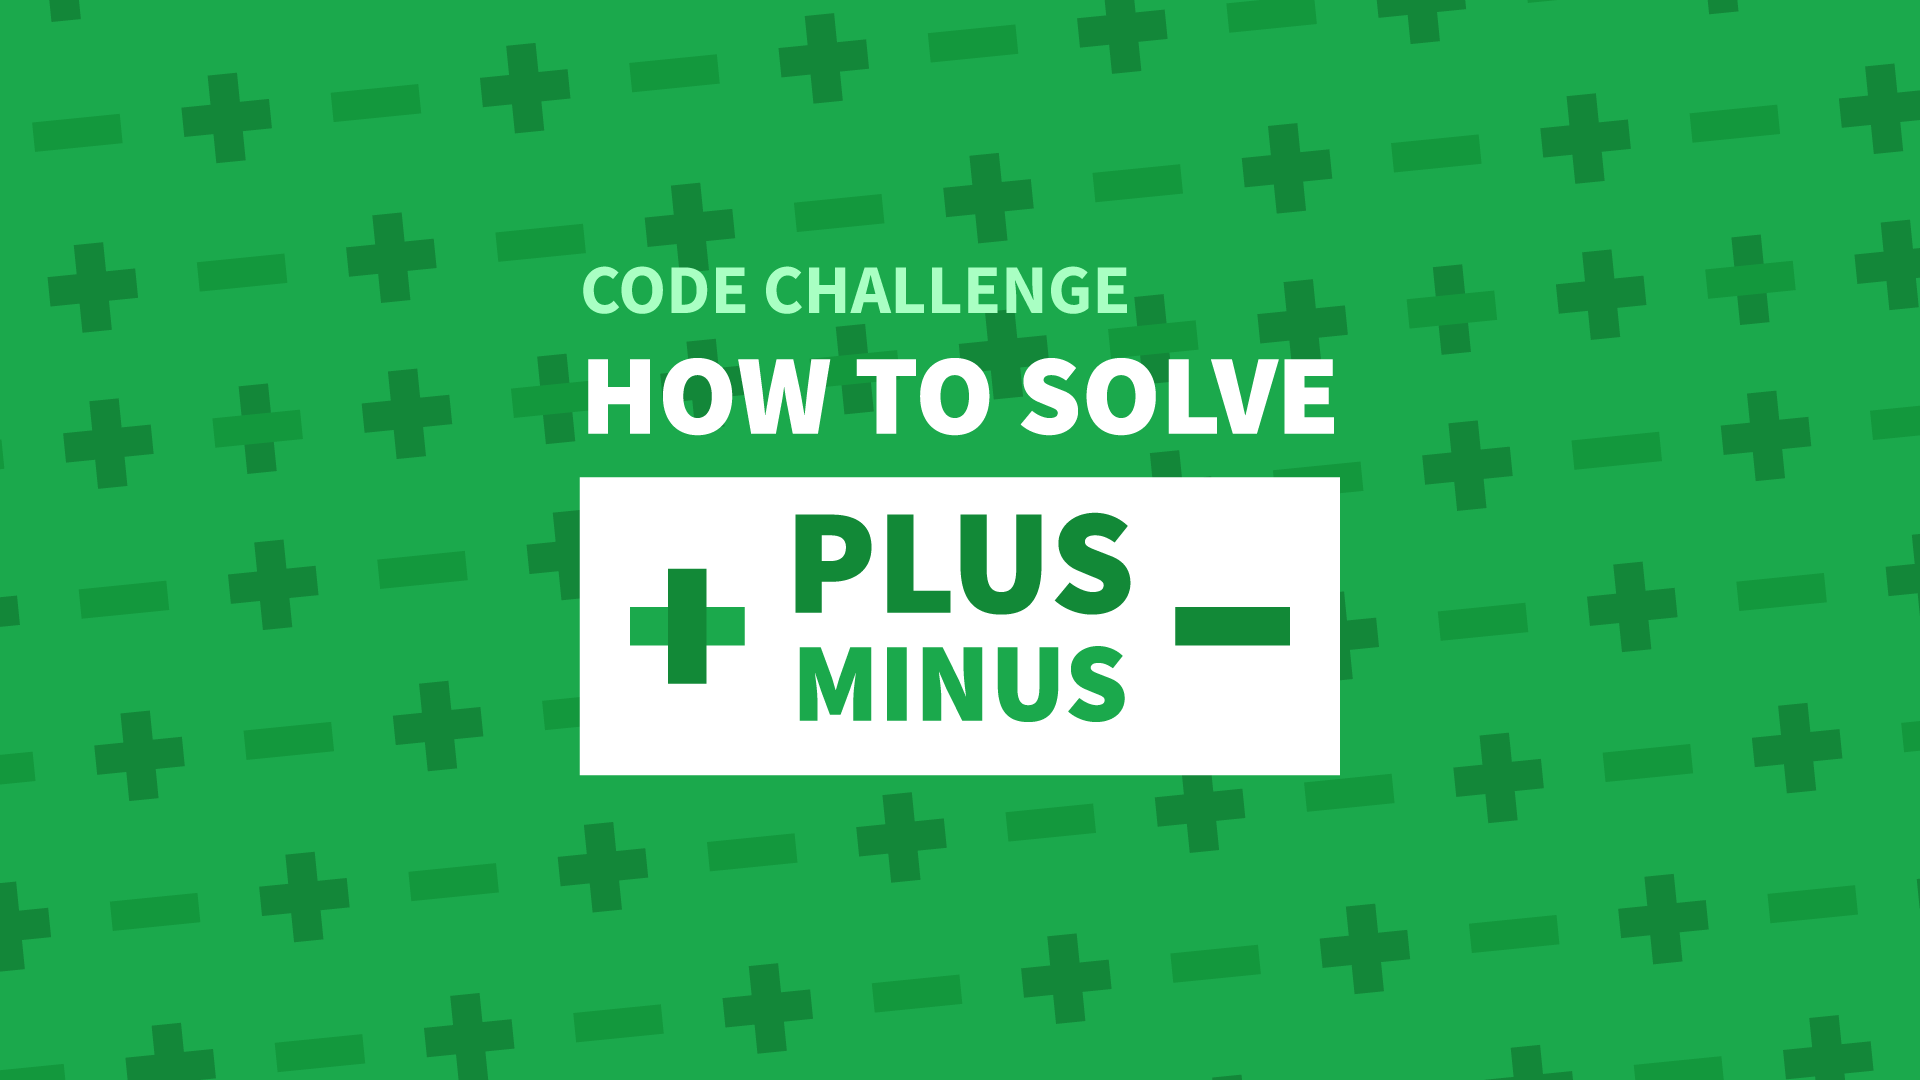 How To Solve The Plus Minus Code Challenge - Manny Codes